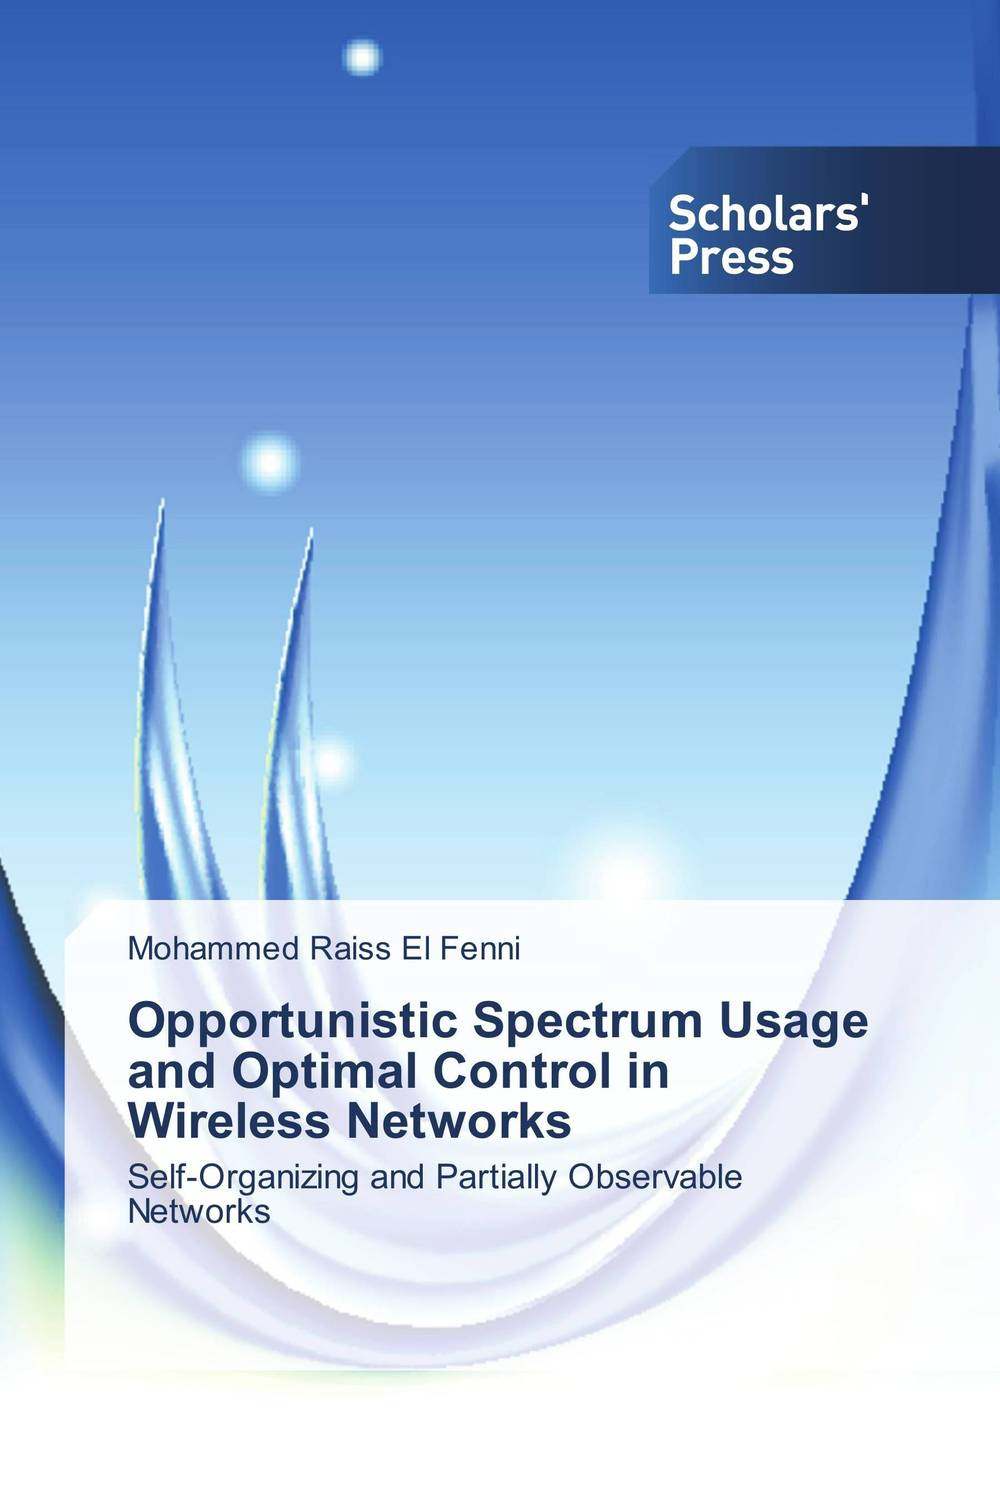 Opportunistic Spectrum Usage and Optimal Control in Wireless Networks optimal energy utilization in sensor networks by clustering